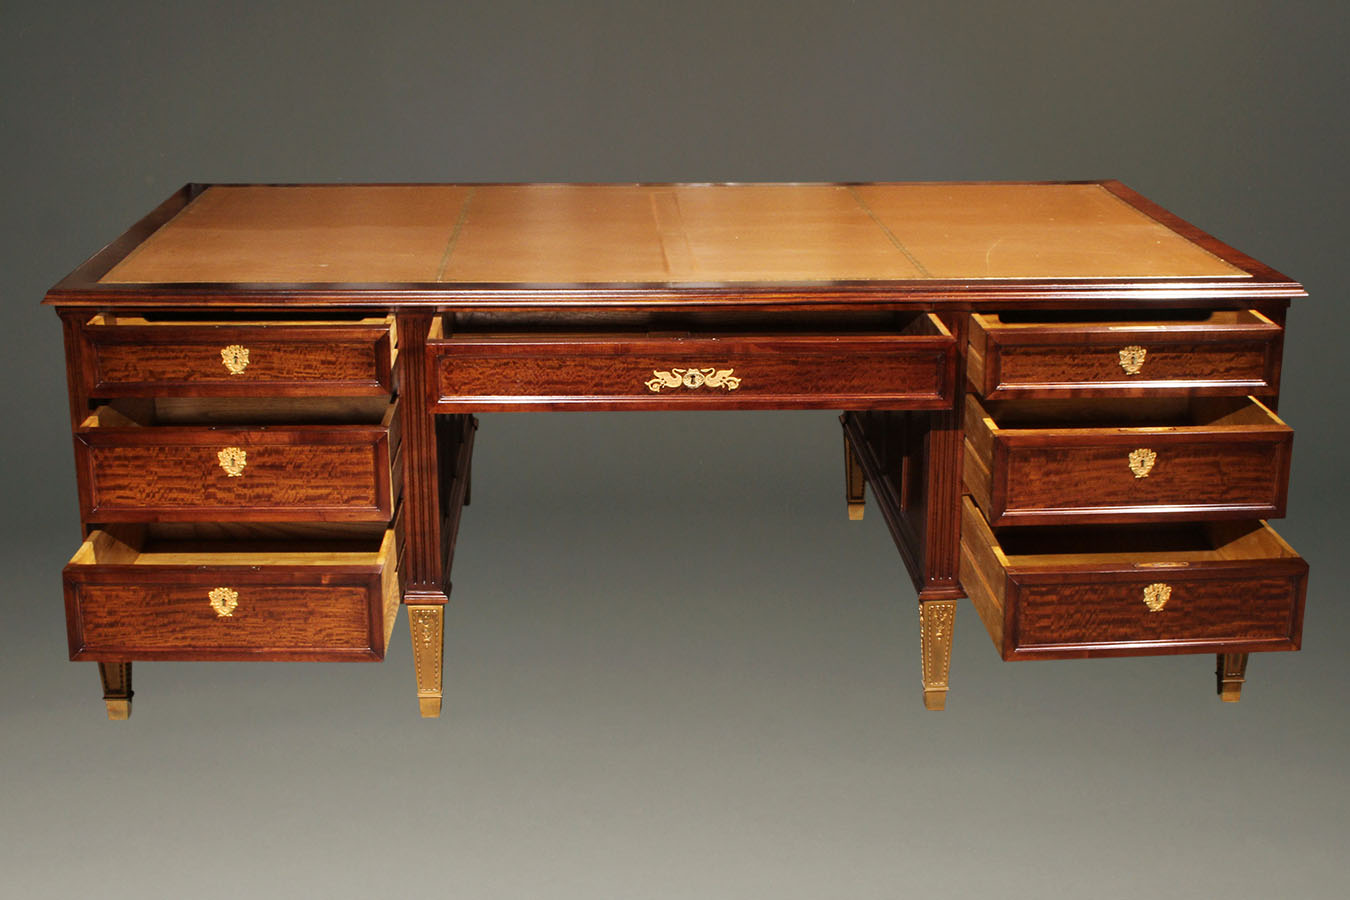 leather in desk thomas surrounds mccullar late partners mahogany george chappell of manner period product the tooled carved gilt chippendale top ii green detail